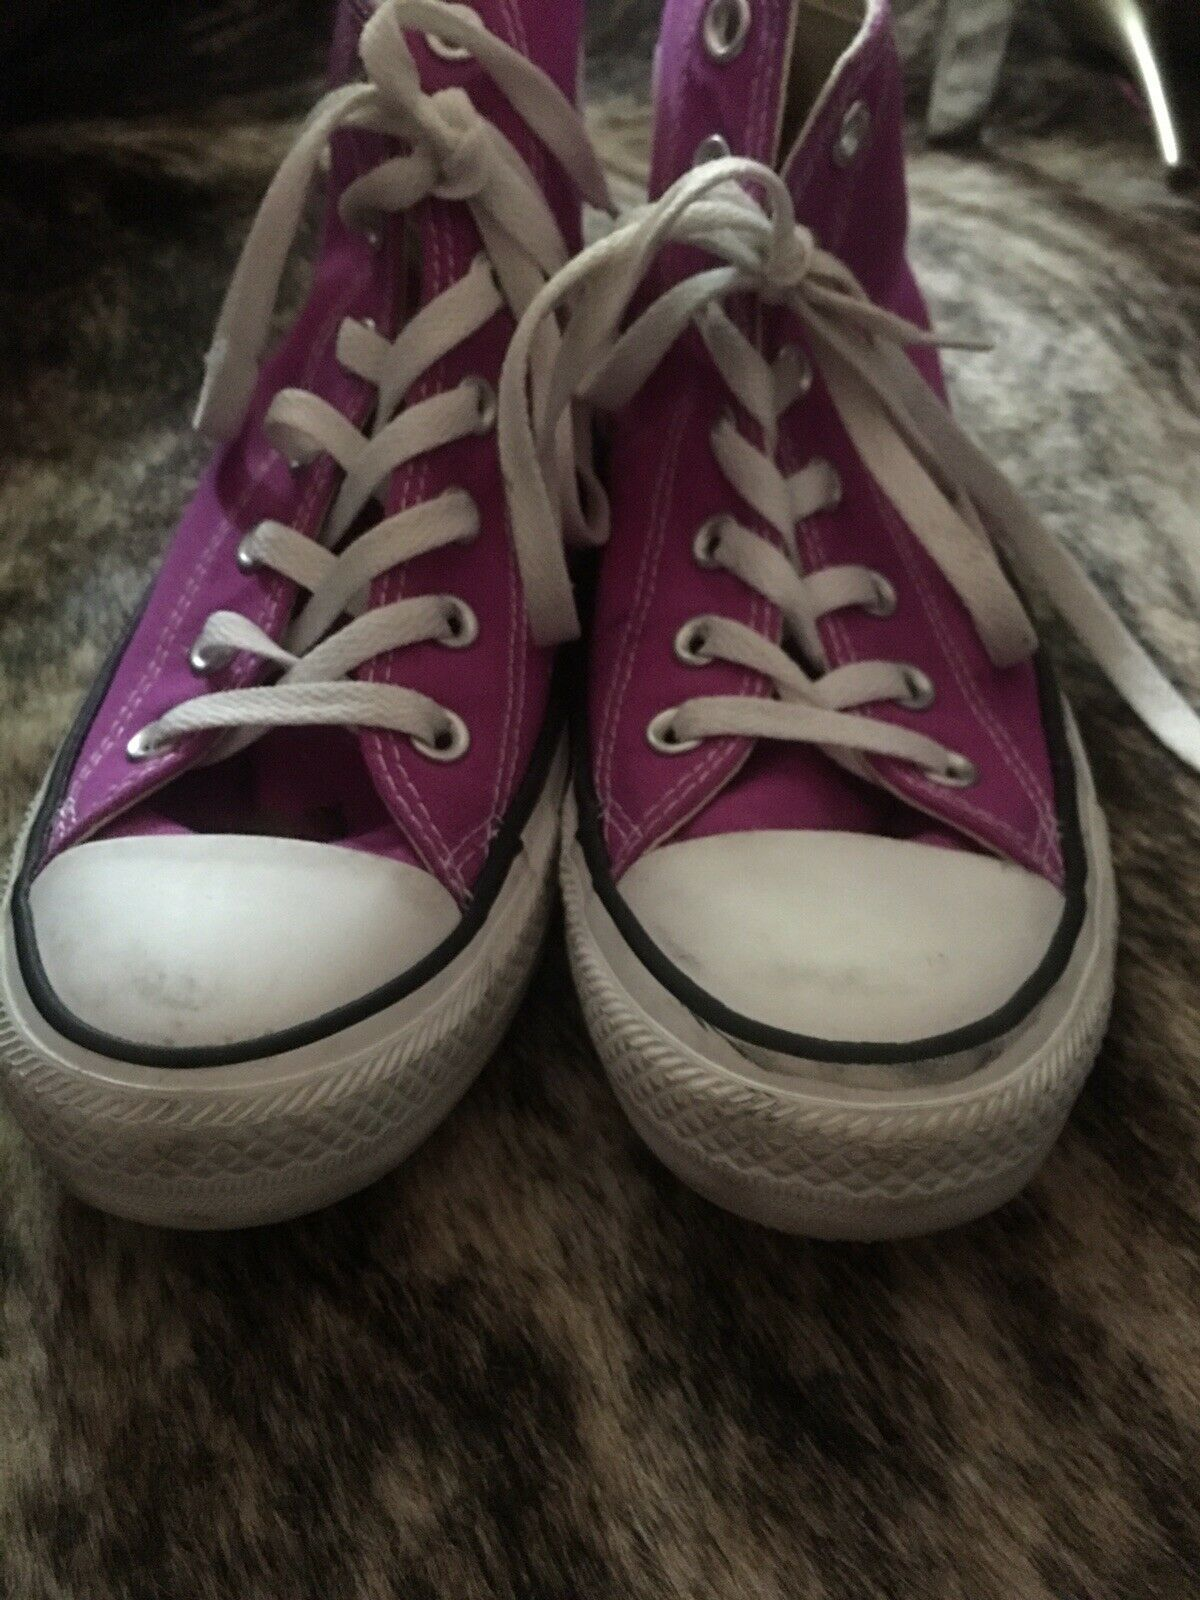 CONVERSE All Star Purple High Top Shoes Women's Size 8 Pre-Owned